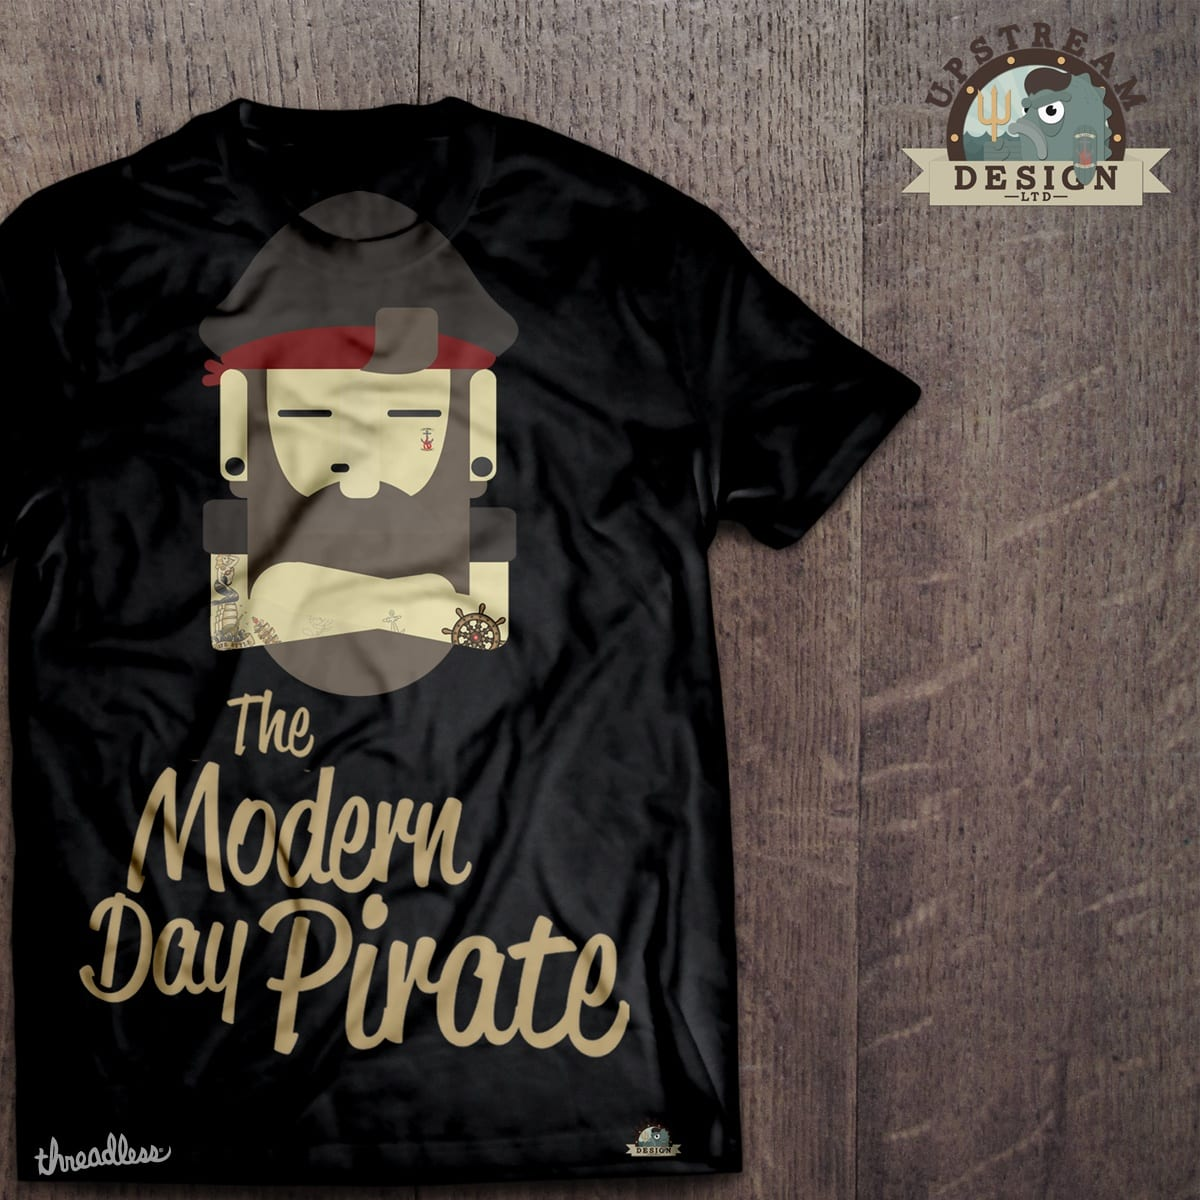 The Modern Pirate by Upstream_Design on Threadless